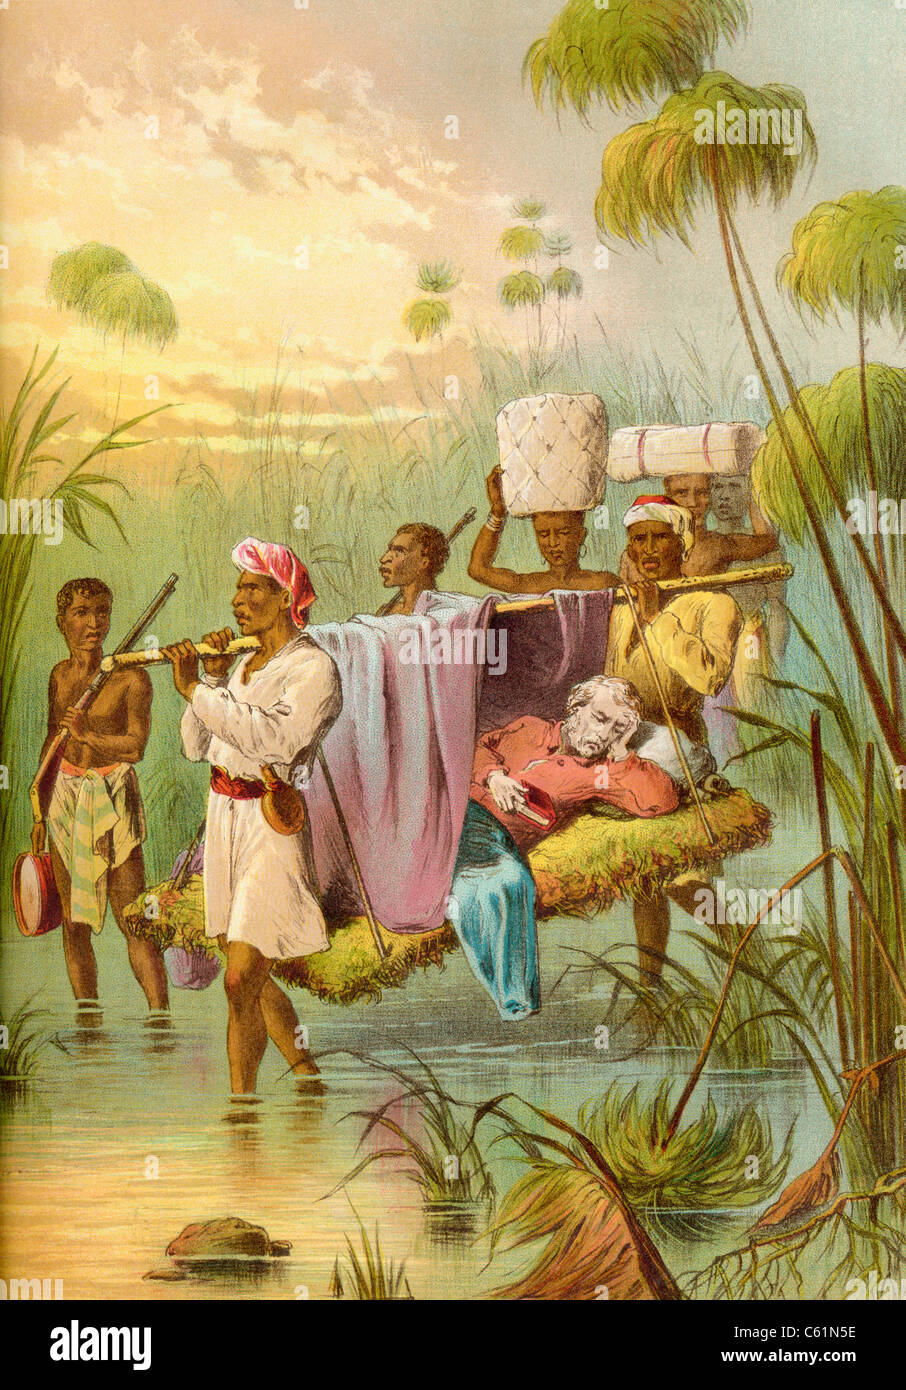 David Livingstone being carried 'The Last Mile' to die at his African home in Ujiji, Tanganyika, Africa - Stock Image